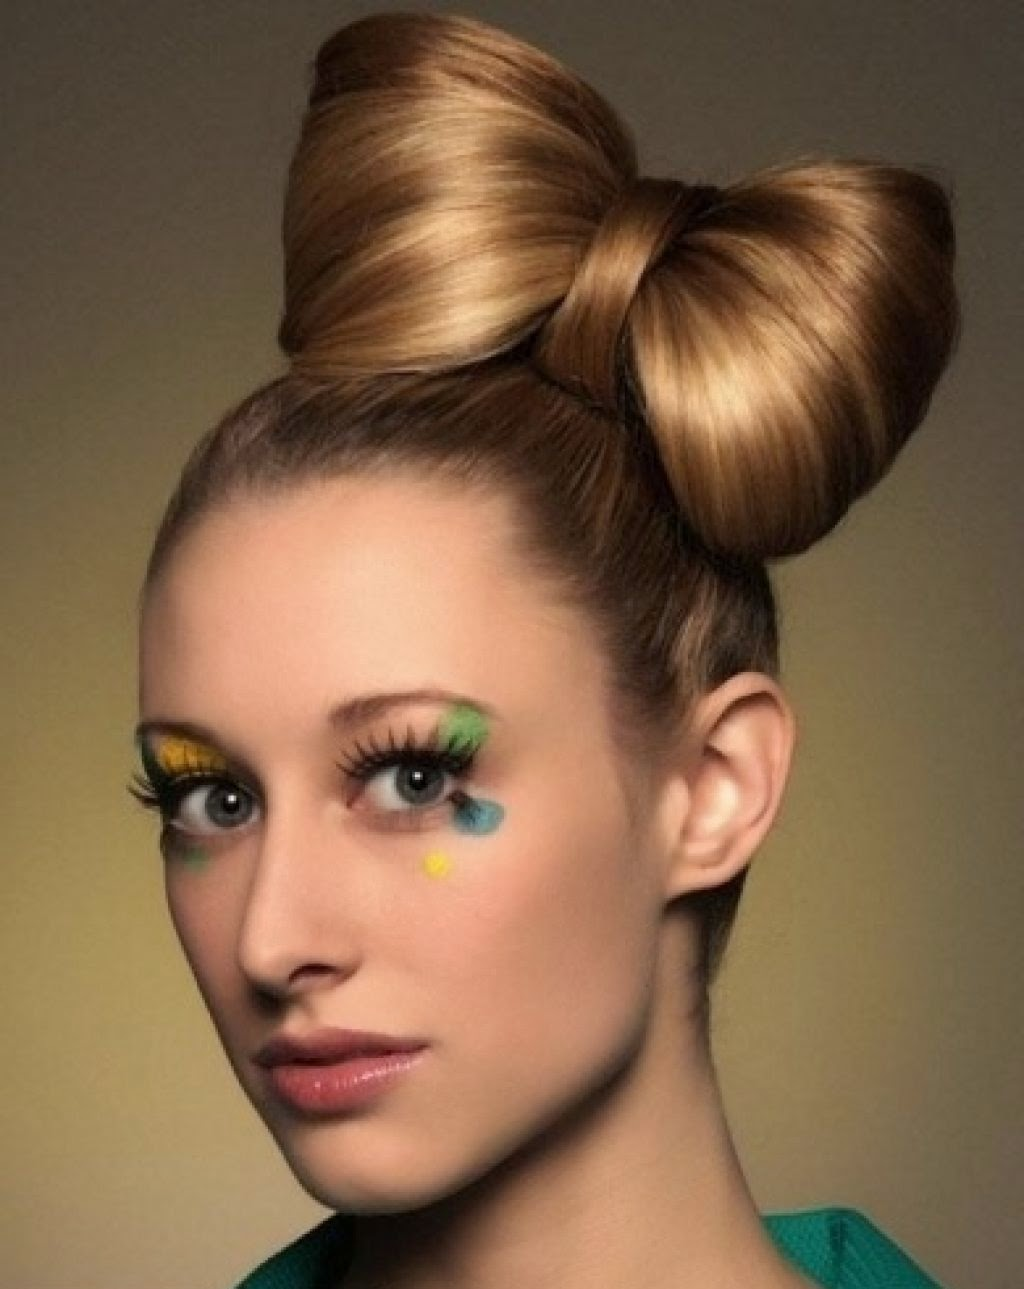 Cute Bow Hairstyle Designs And Ideas For Girls Calgary Edmonton